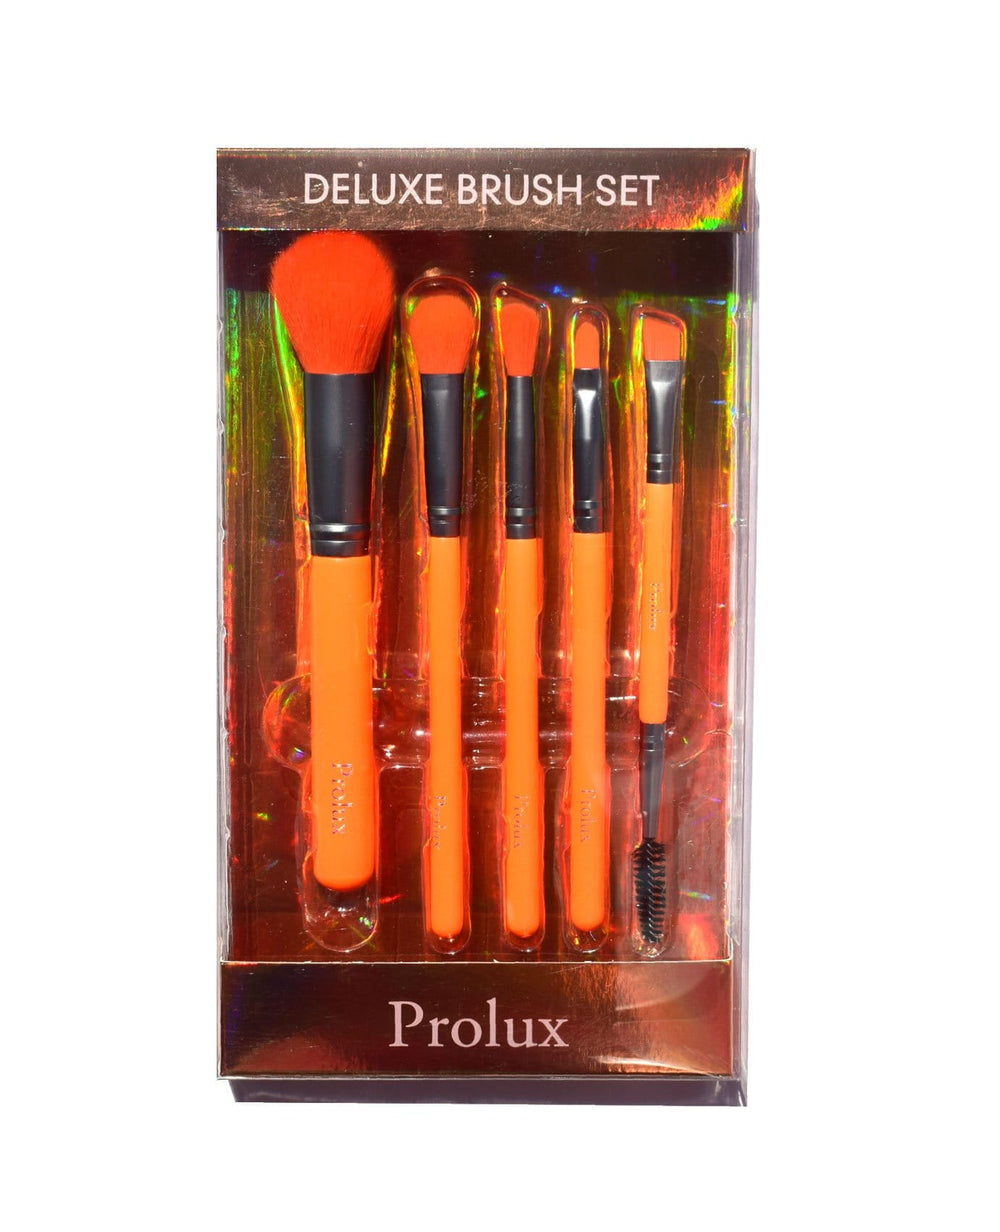 Prolux Deluxe Brush Set- Orange Neon